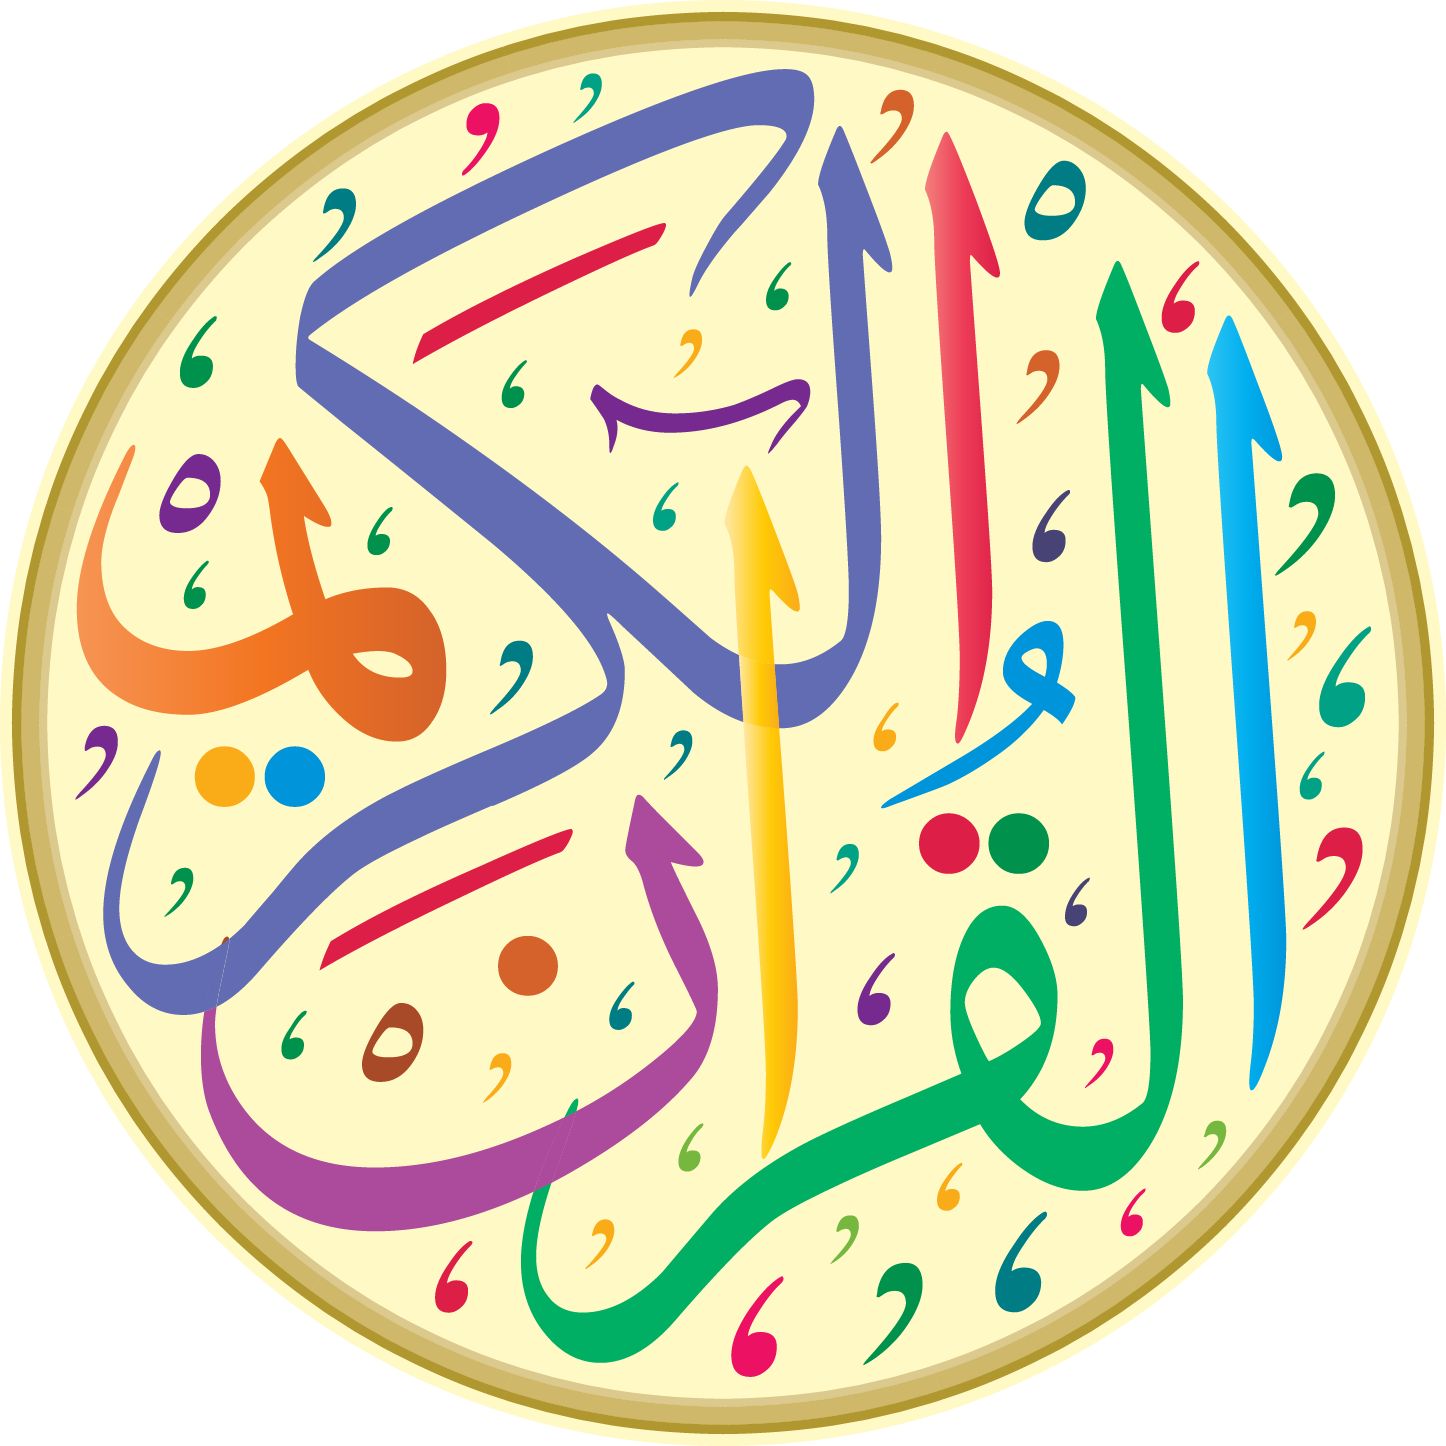 quran logo color vector download free #islamic #islam #arab #logos #logo #arabic #vector #vectors  #Quran #logos #font #logo #design #fonts